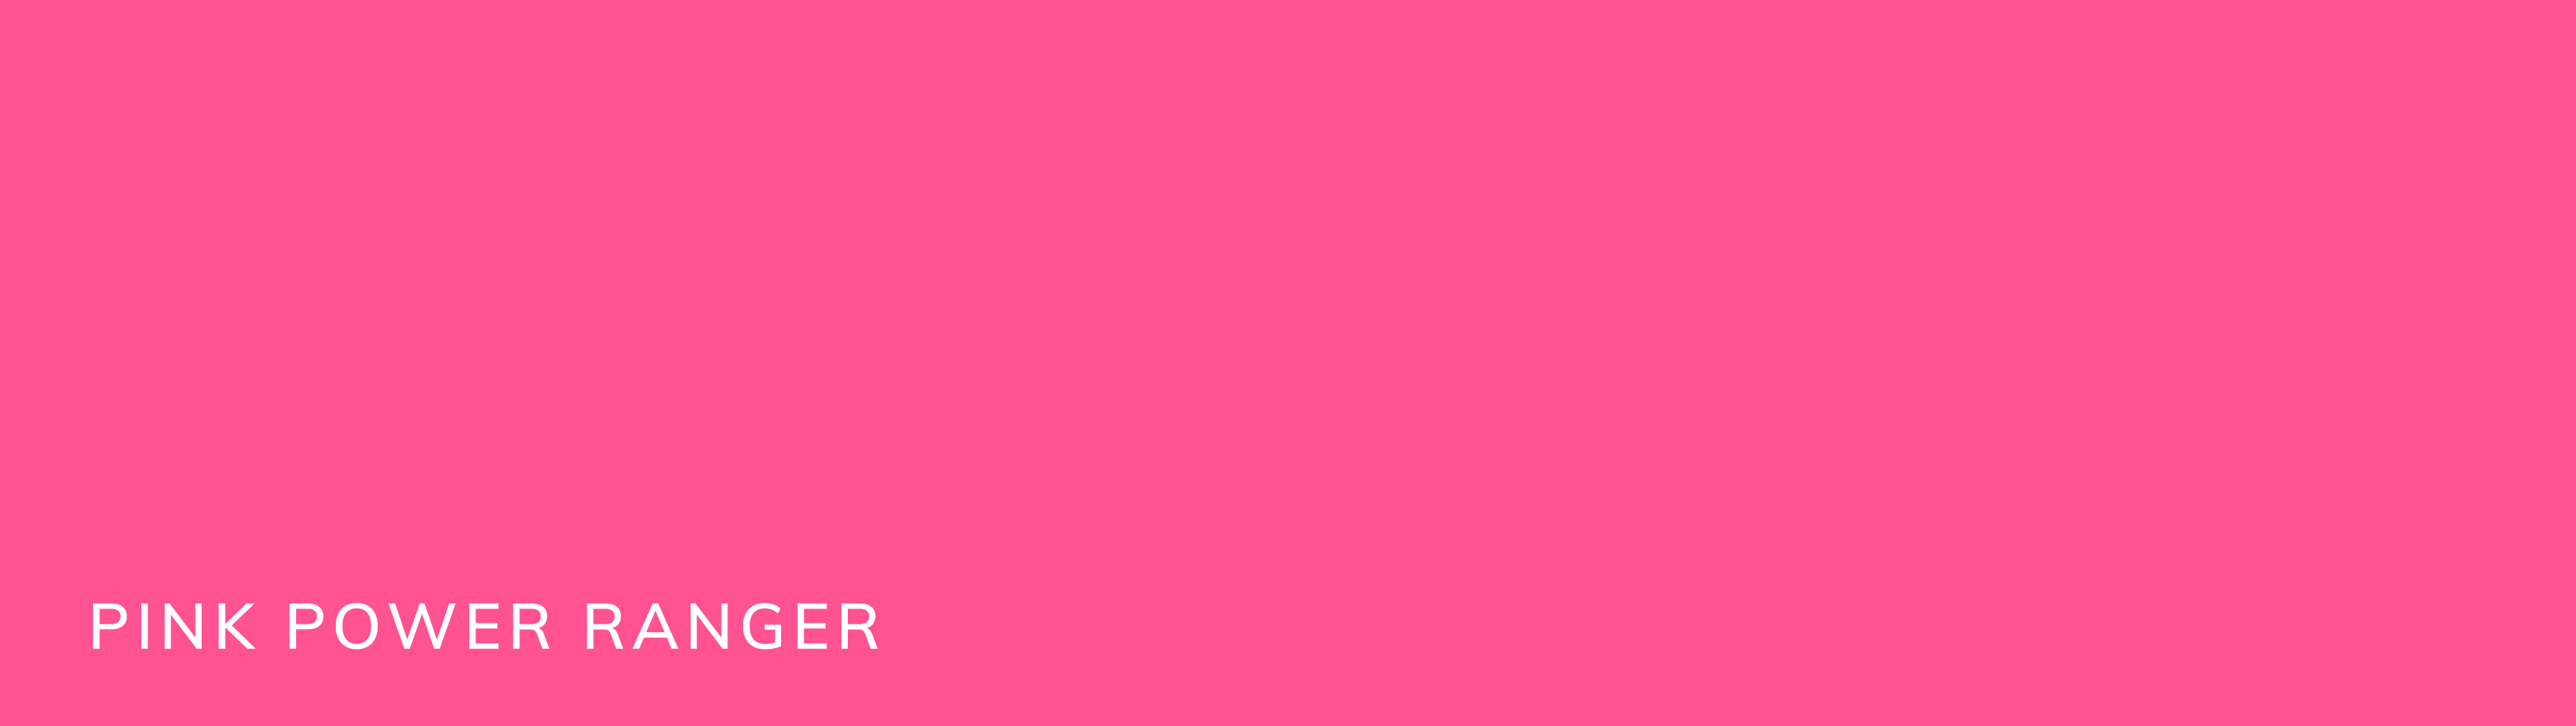 Another secondary brand color is this vibrant dark pink. This color is called pink power ranger.